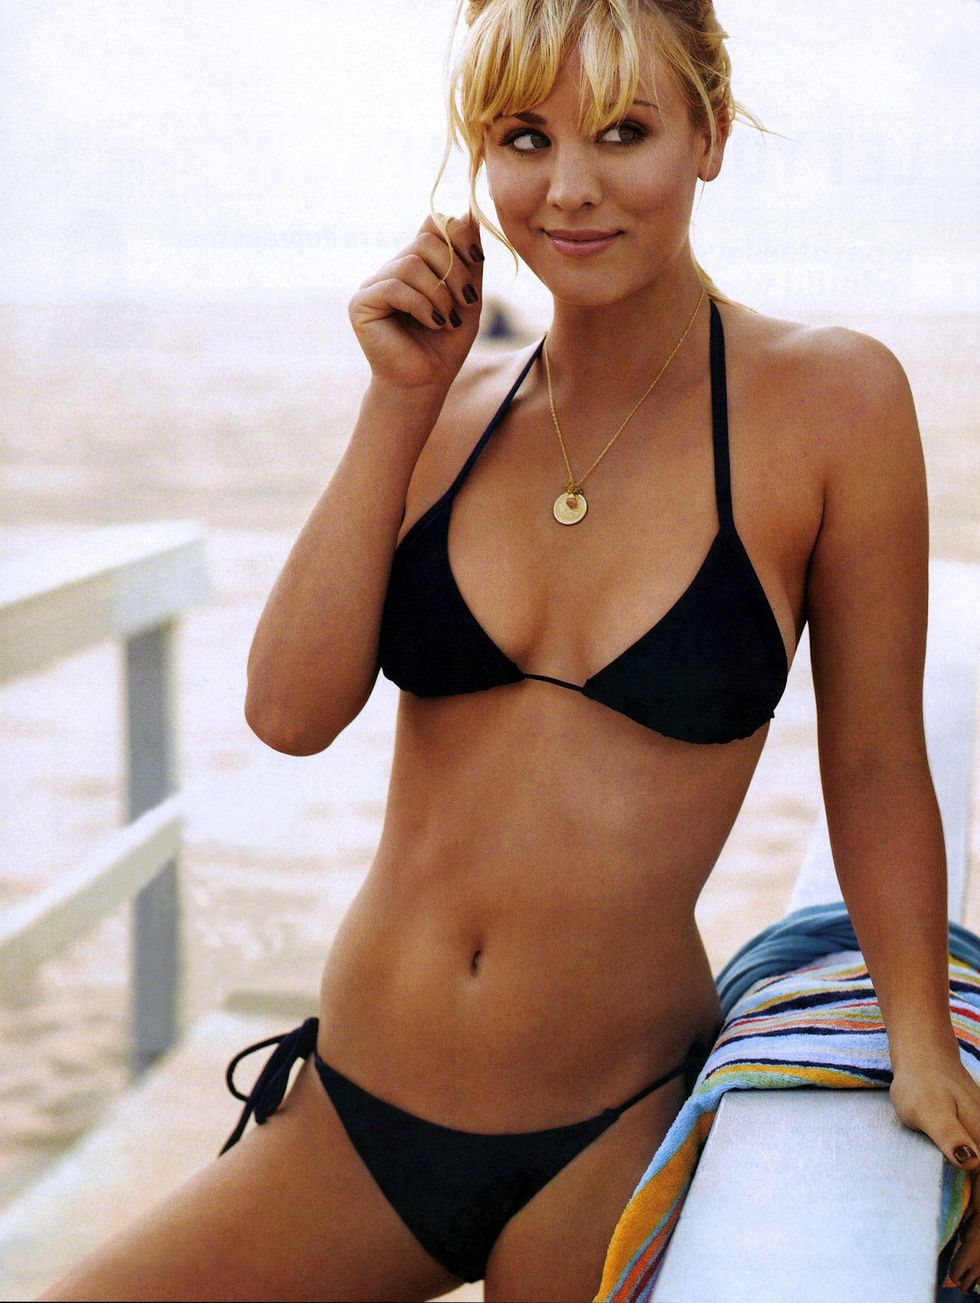 kaley-cuoco-in-bikini-for-mens-health-magazine-01